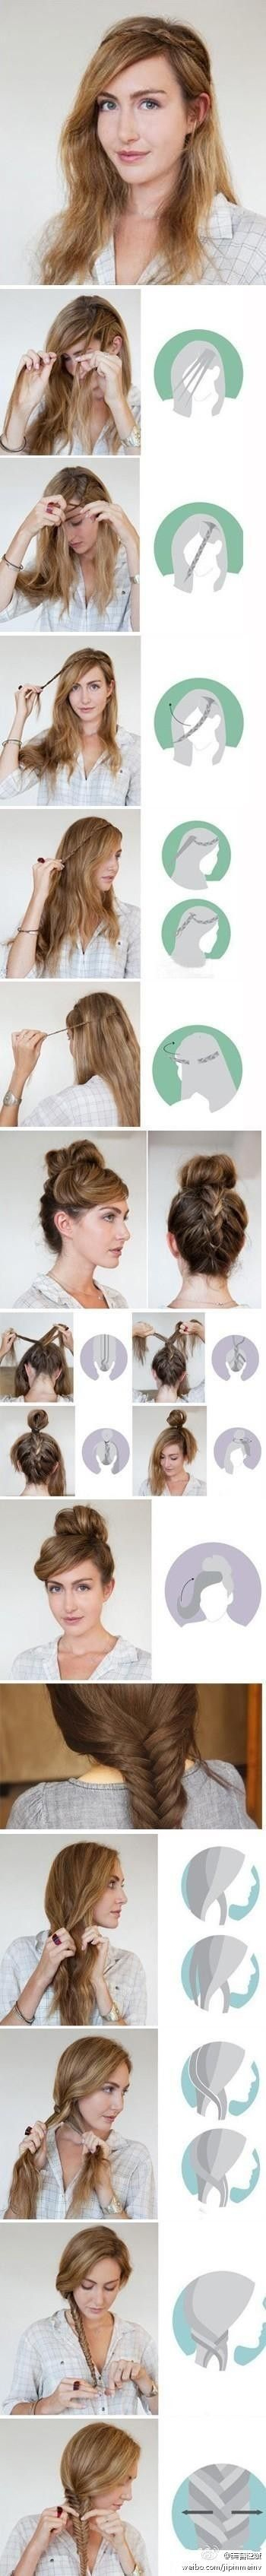 awesome ways to do your hair